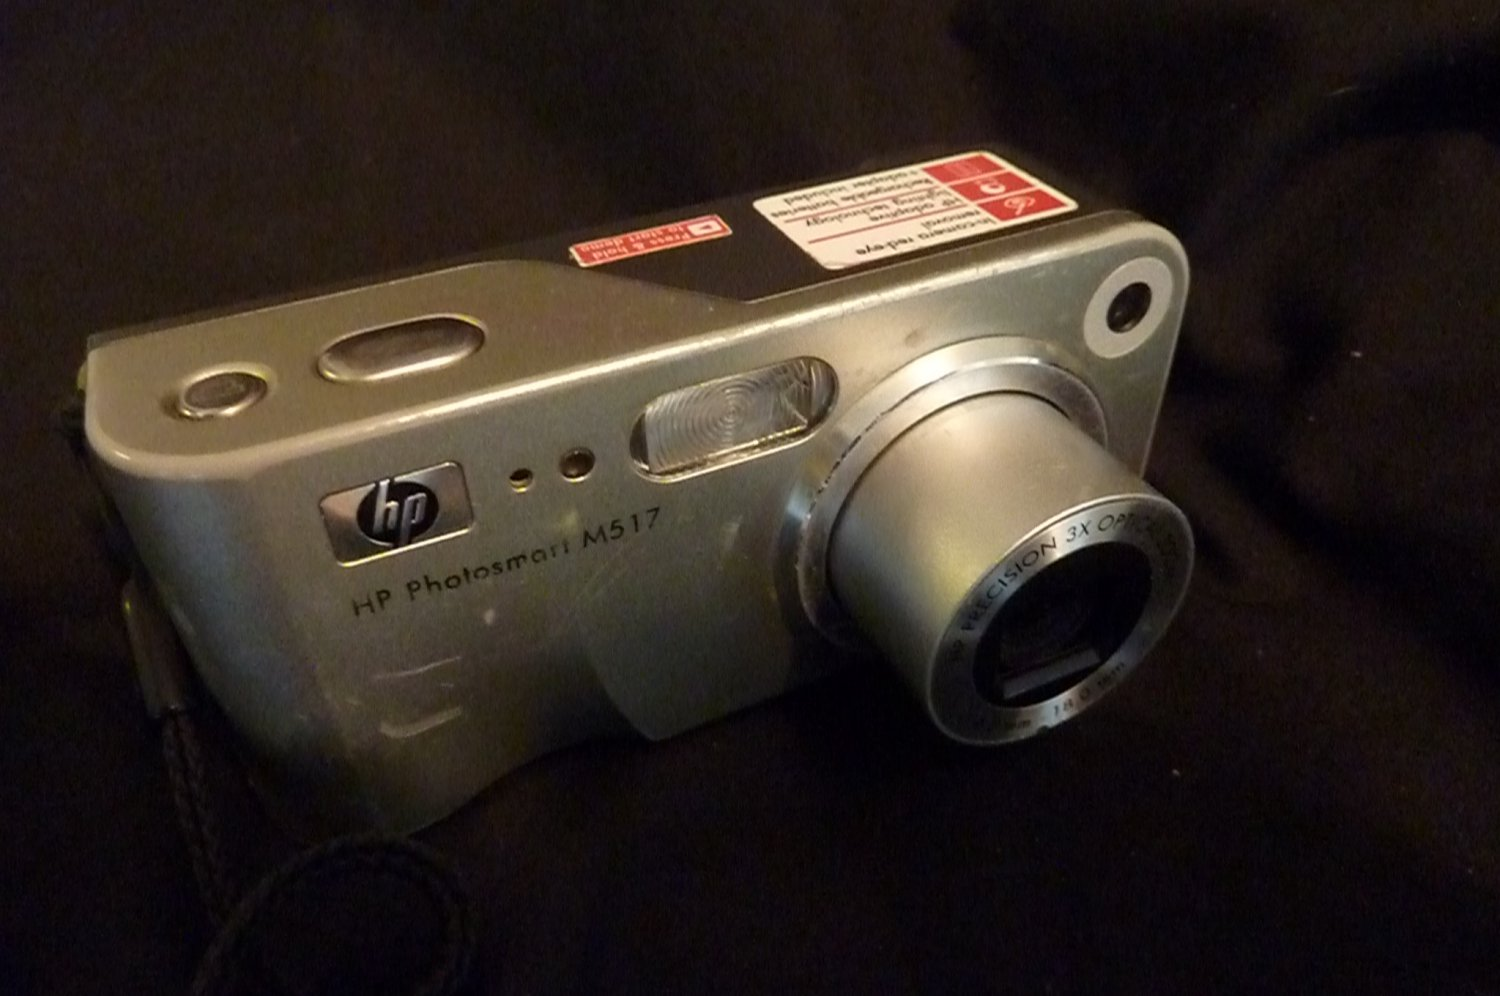 Hewlett Packard PhotoSmart M517 Digital Camera